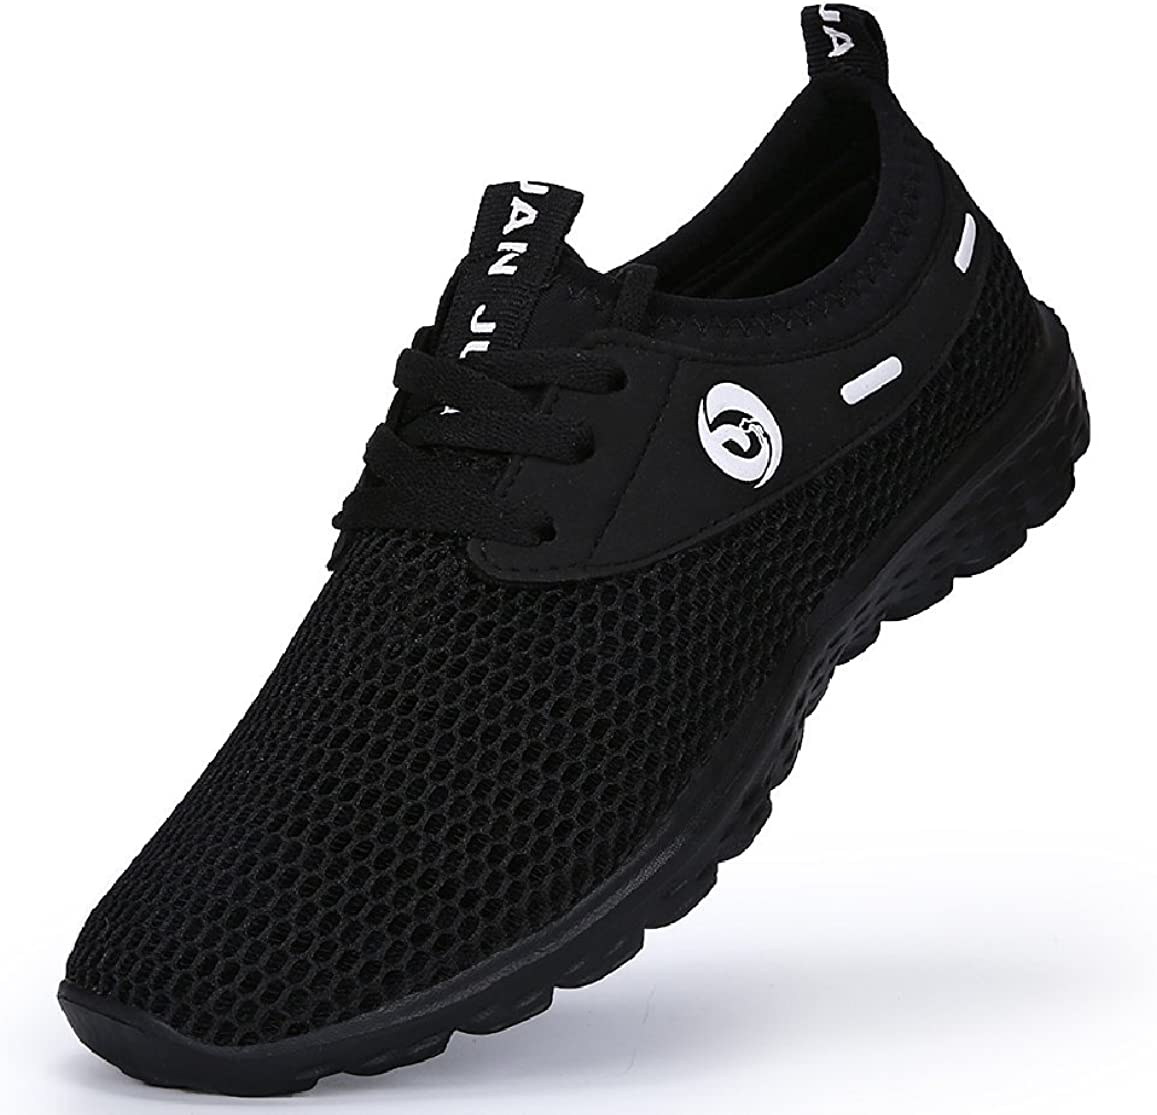 Zhaoguan Breathable Running Shoes Sneakers Outdoor Sport Shoes Professional Athletic Shoes